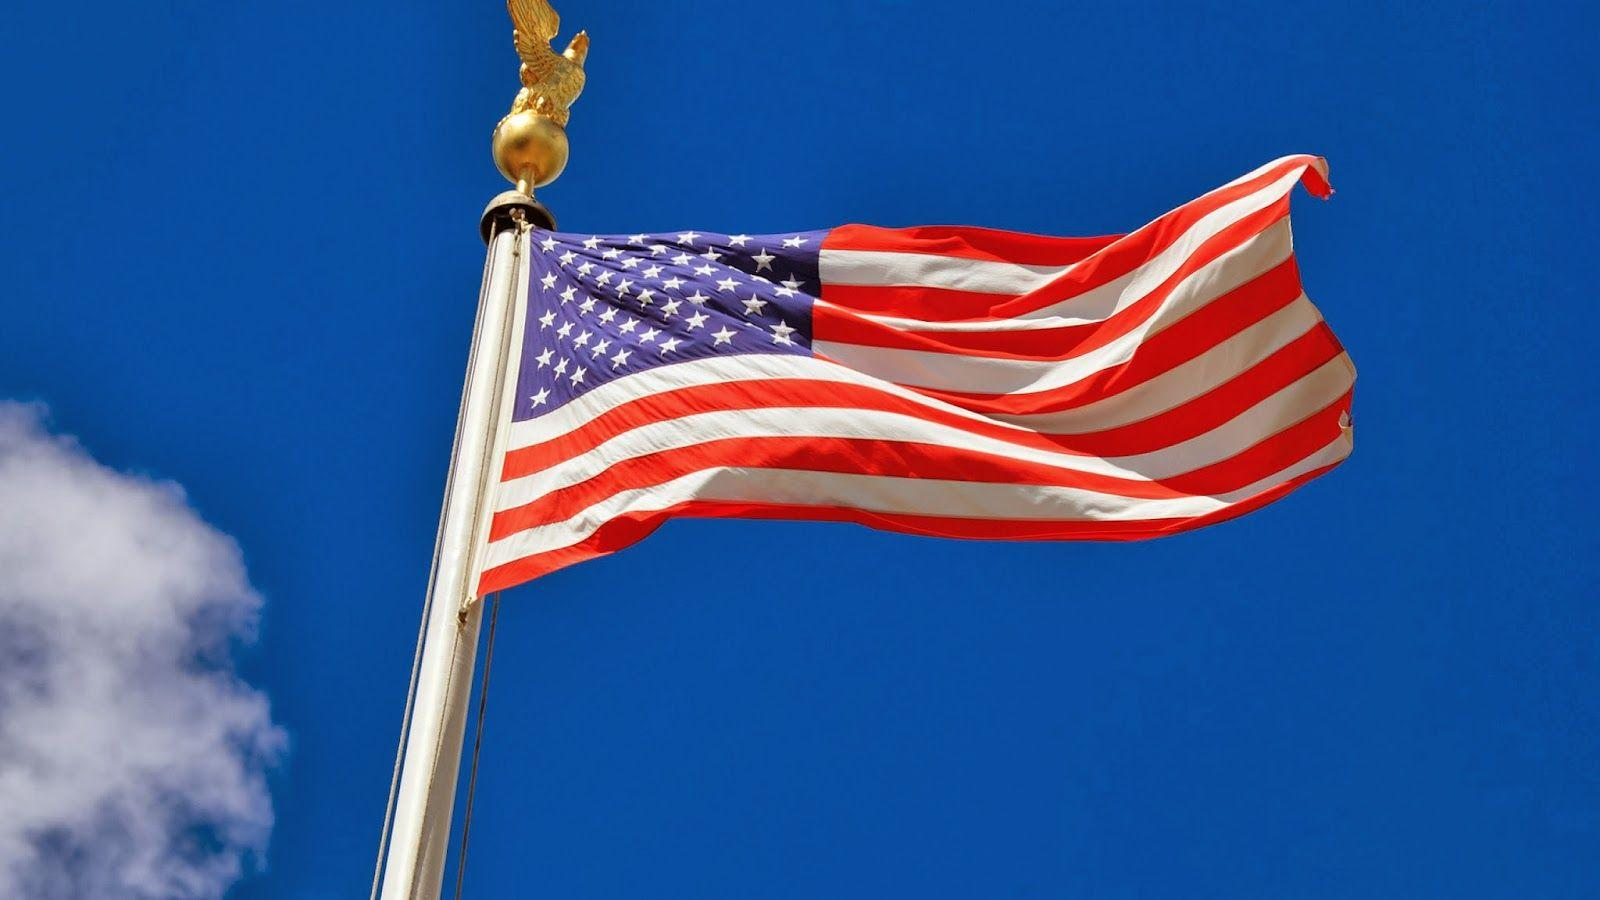 The American Flag Wallpapers